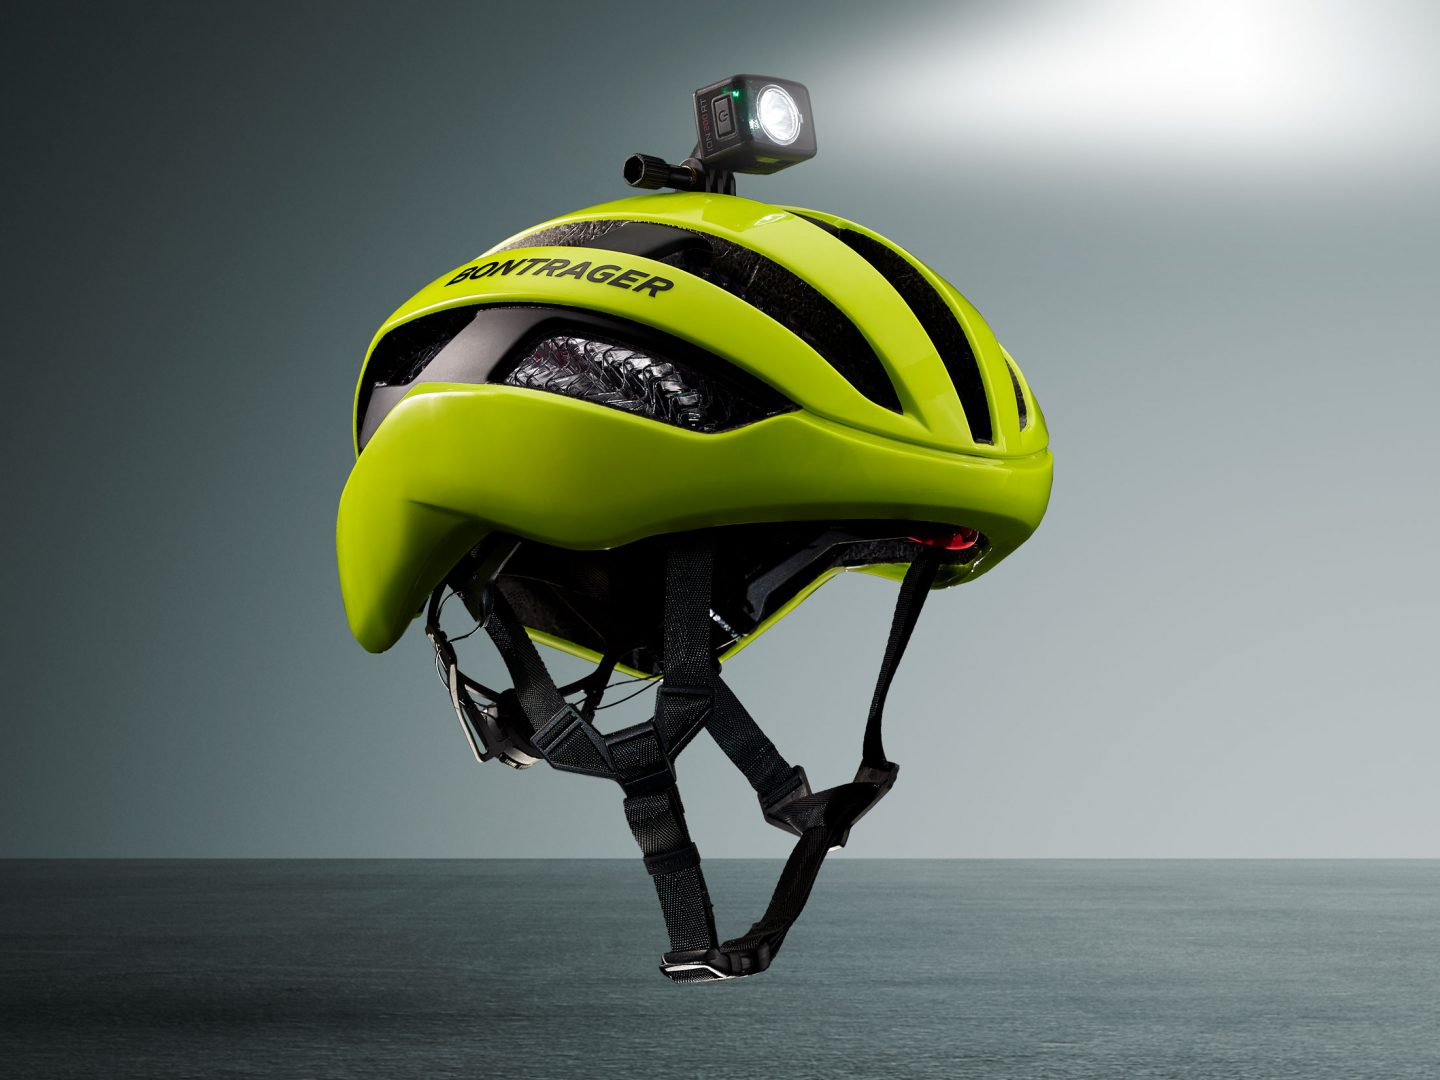 Circuit WaveCel helmet with light on top and grey background